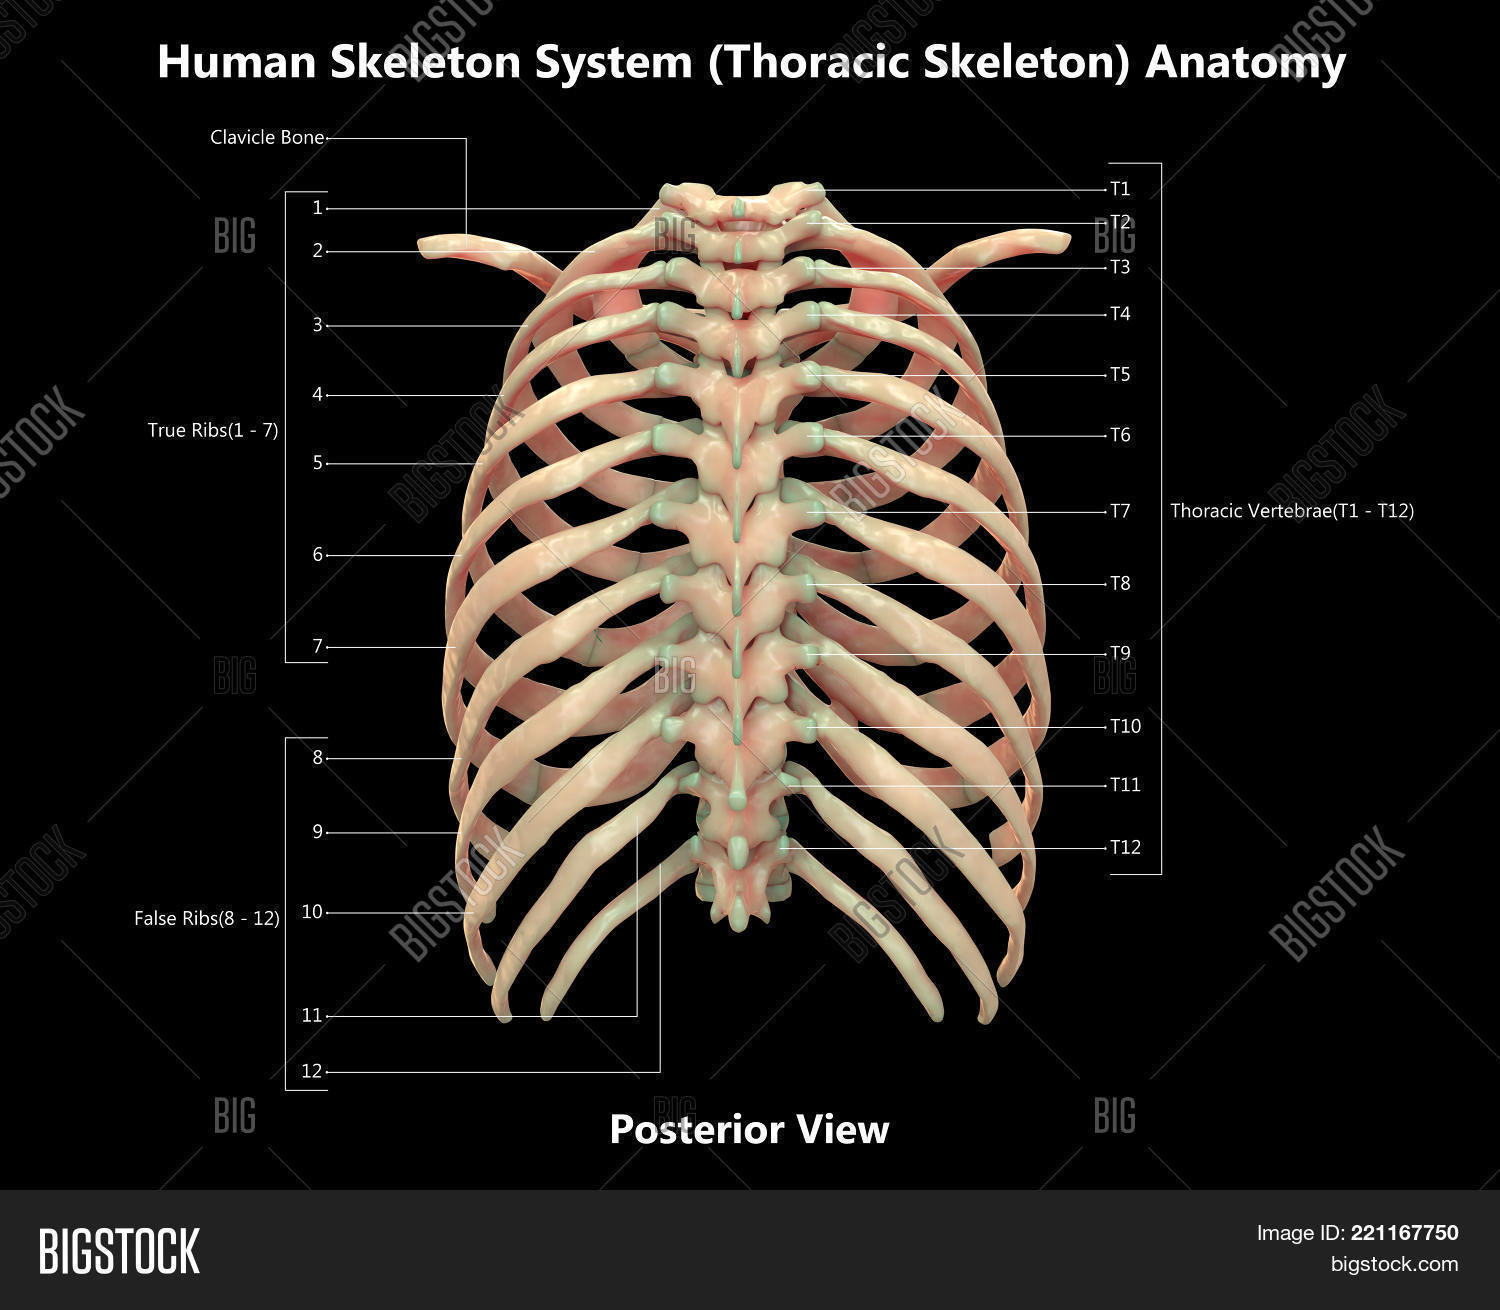 Human Skeleton System Image & Photo (Free Trial) | Bigstock